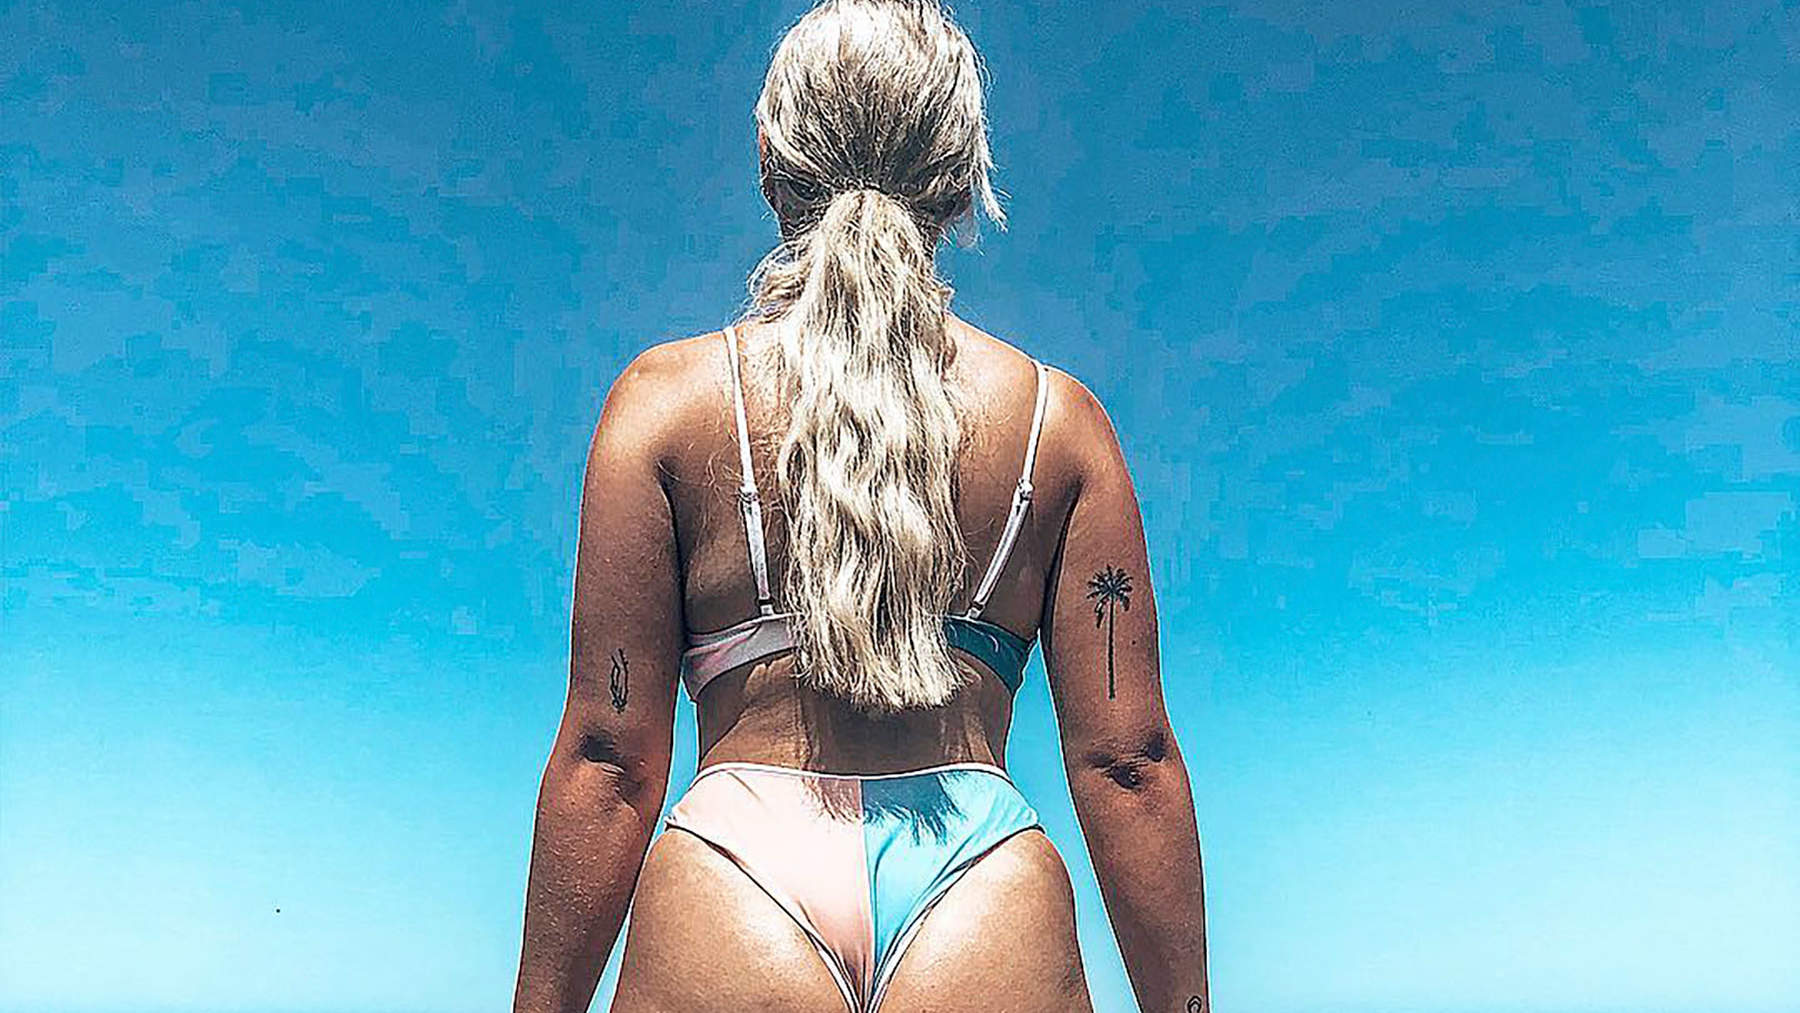 Instagram Swimwear Model Opens Up About Body Image: 'Cellulite Doesn't Make You Less Beautiful'